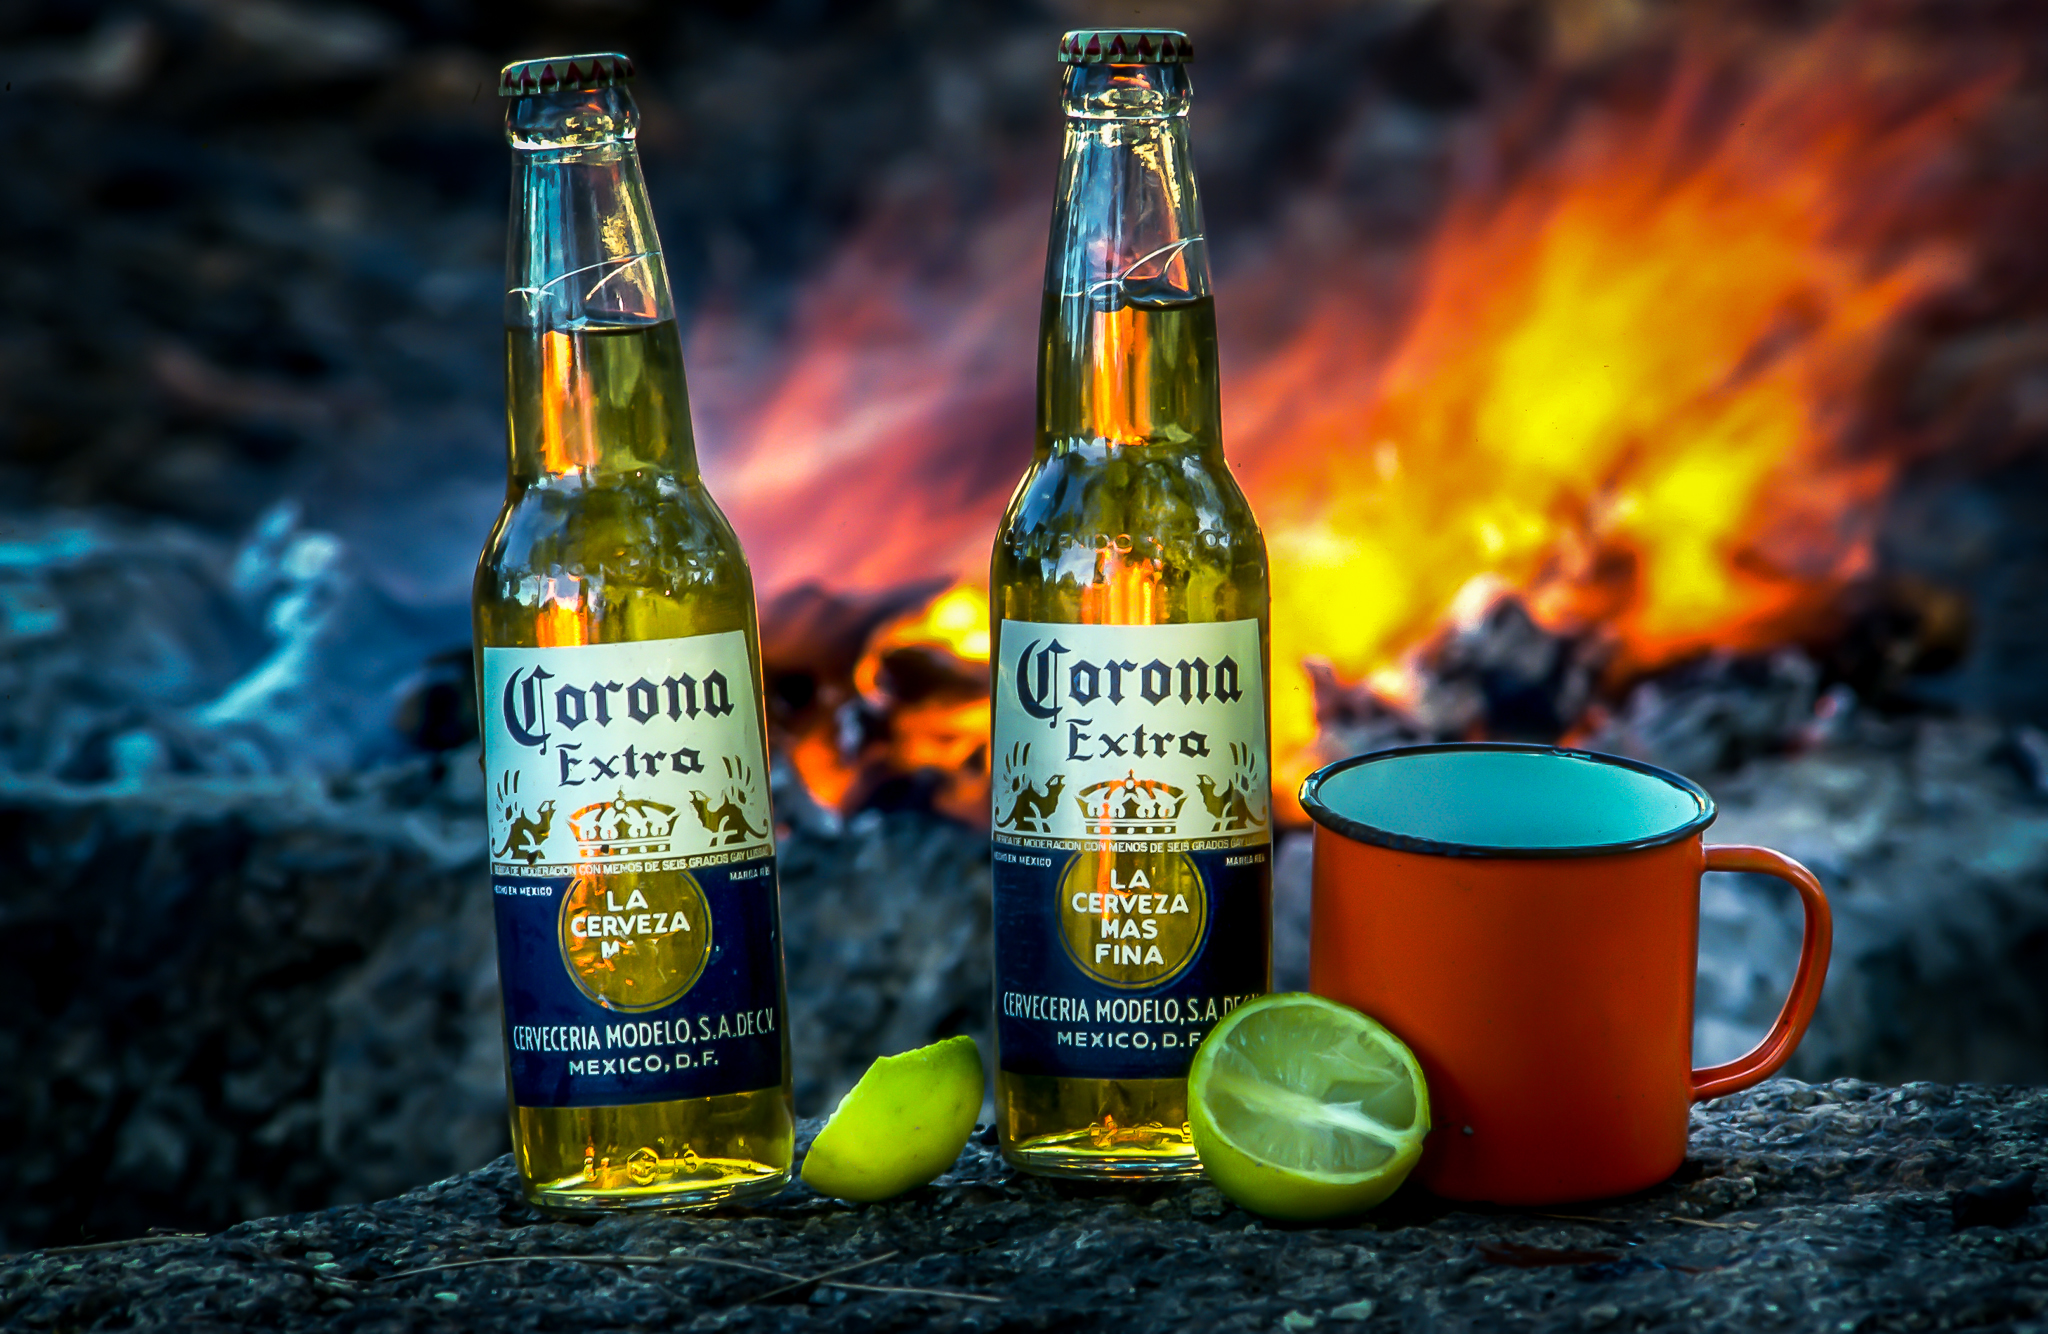 A couple of cold coronas by the campfire